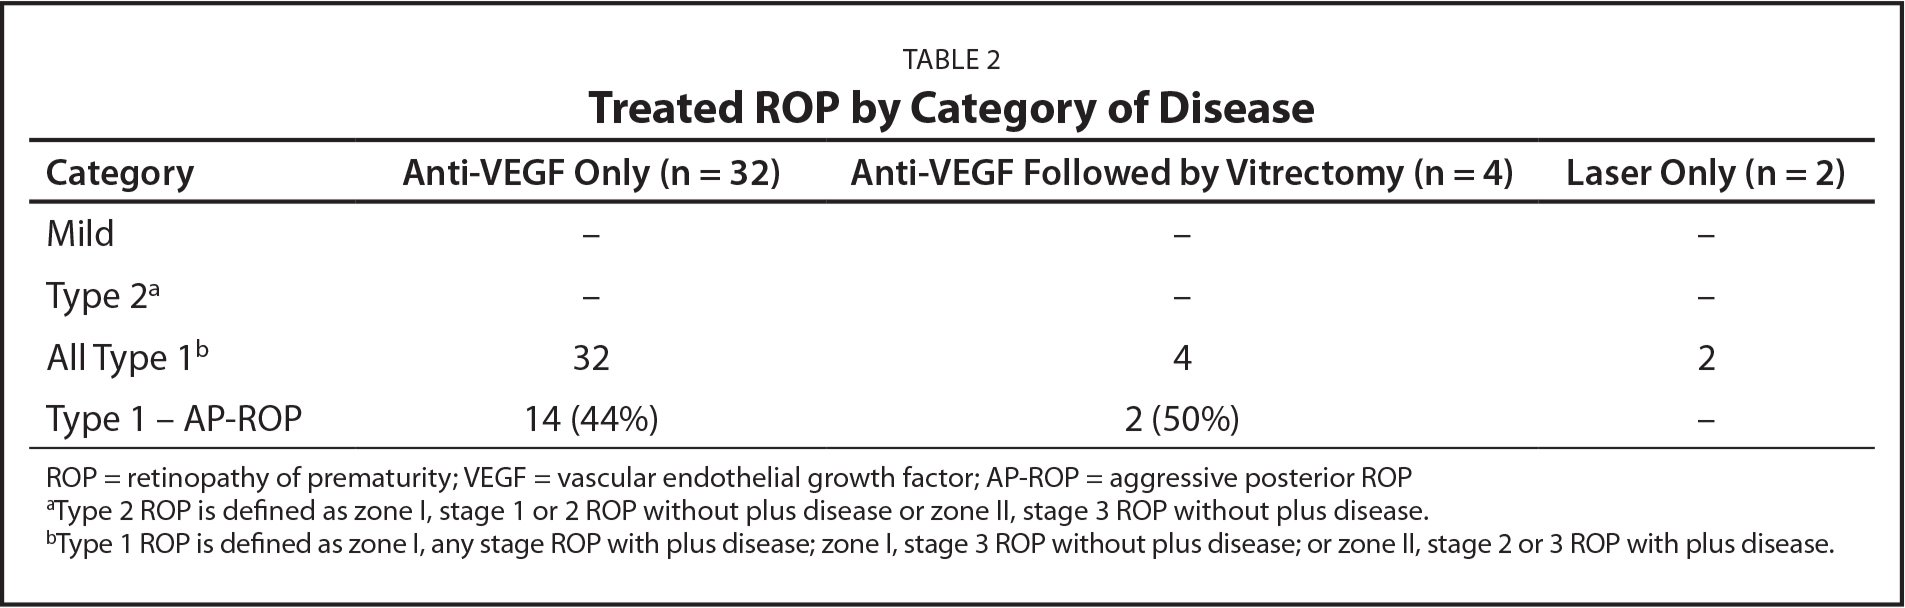 Treated ROP by Category of Disease